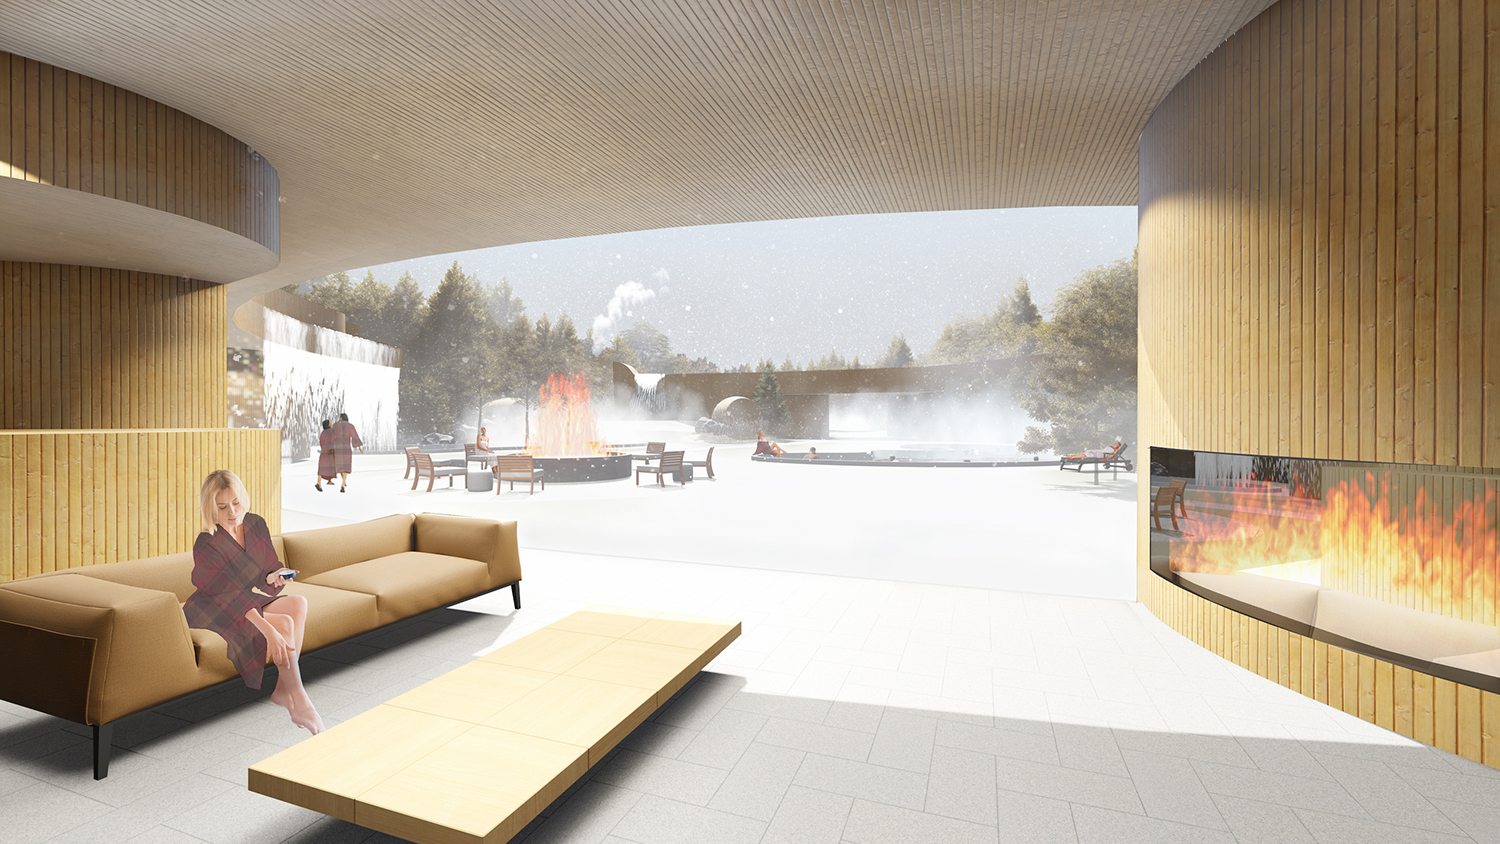 The design of Edmonton Nordic Spa took inspiration from the natural water flow and geological river formations along the North Saskatchewan River.